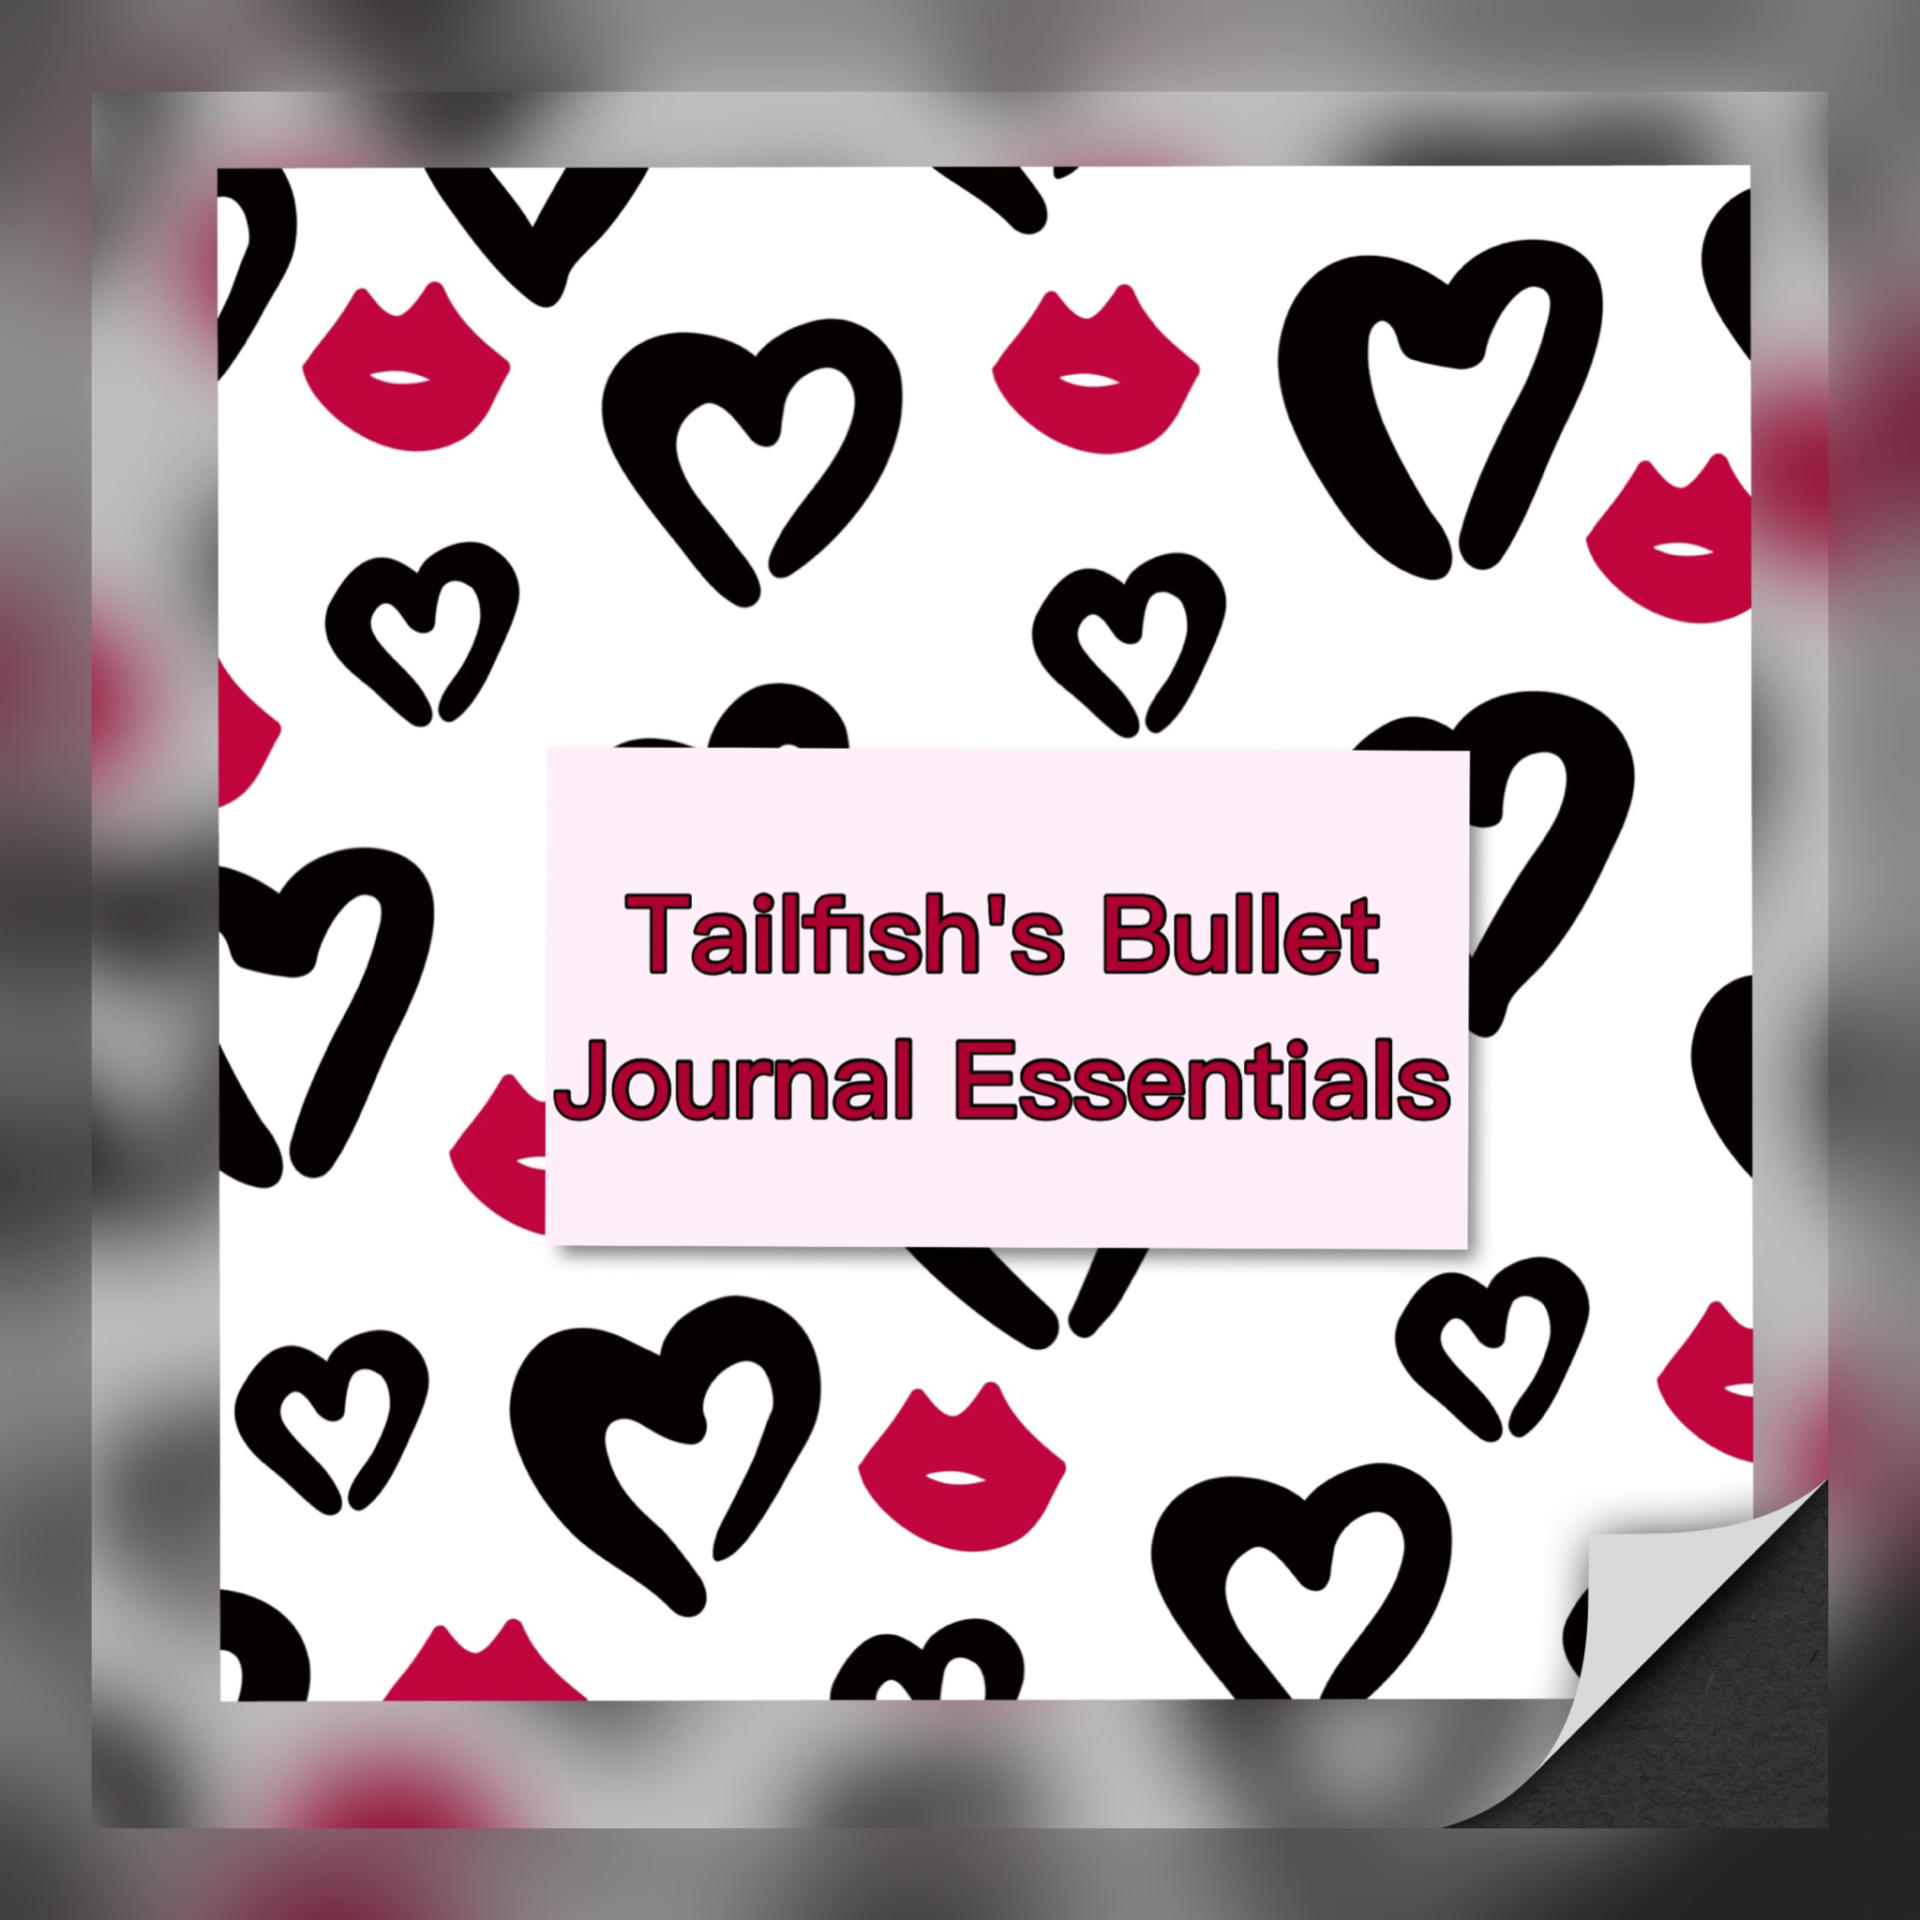 Tailfish's Bullet Journal Essentials